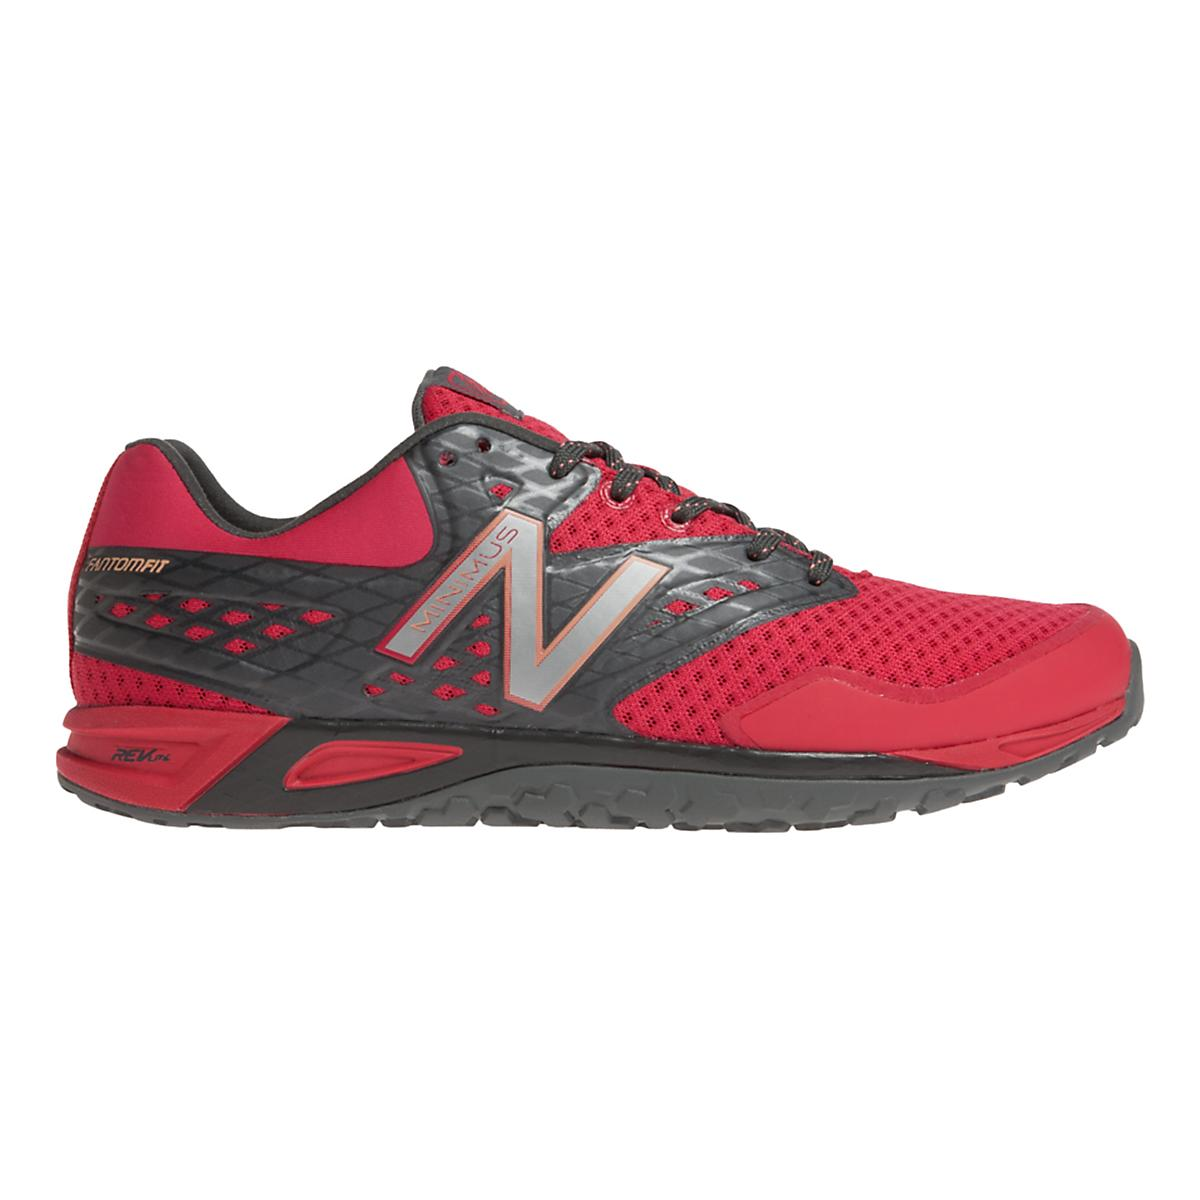 Womens New Balance WX00 Cross Training Shoe at Road Runner Sports 4df446301d